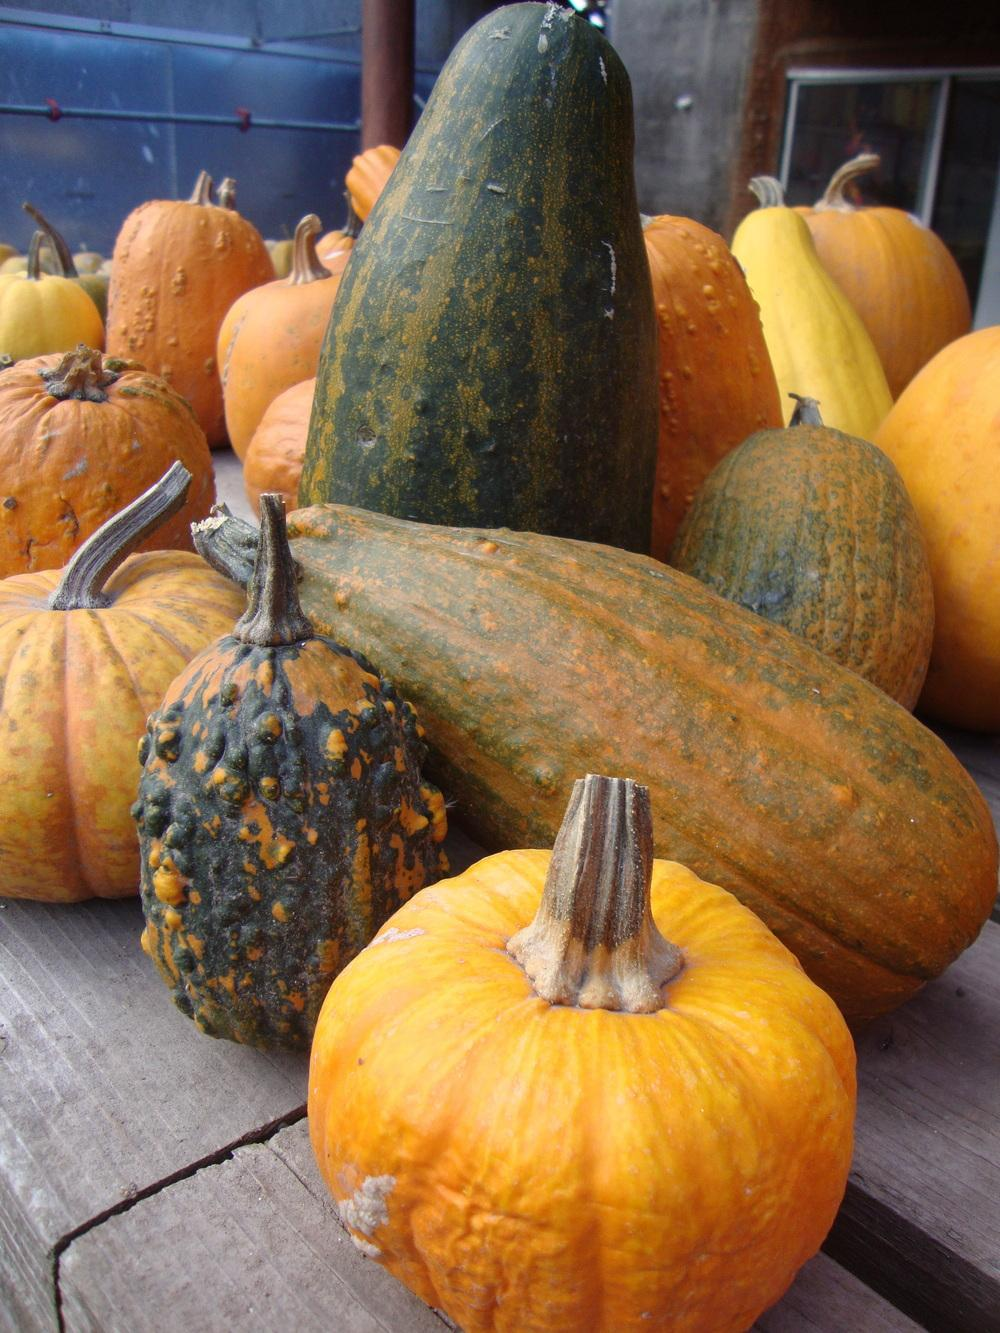 Photo of Gourds, Squashes and Pumpkins (Cucurbita) uploaded by Paul2032